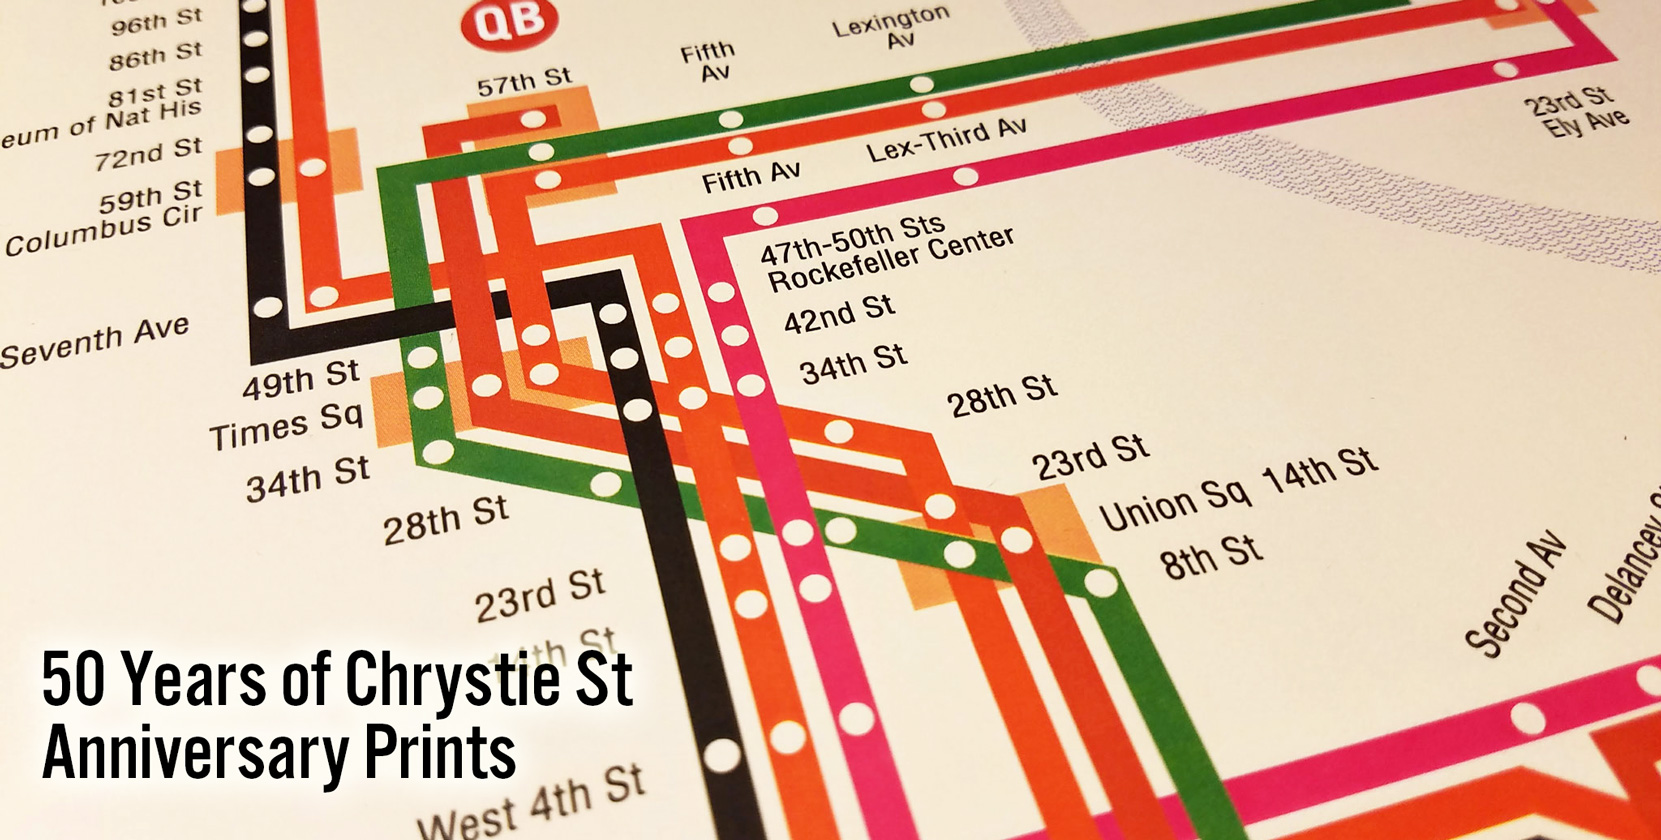 but the simple subway map condenses this information to show subway lines as simple single colored lines and stations as simple dots